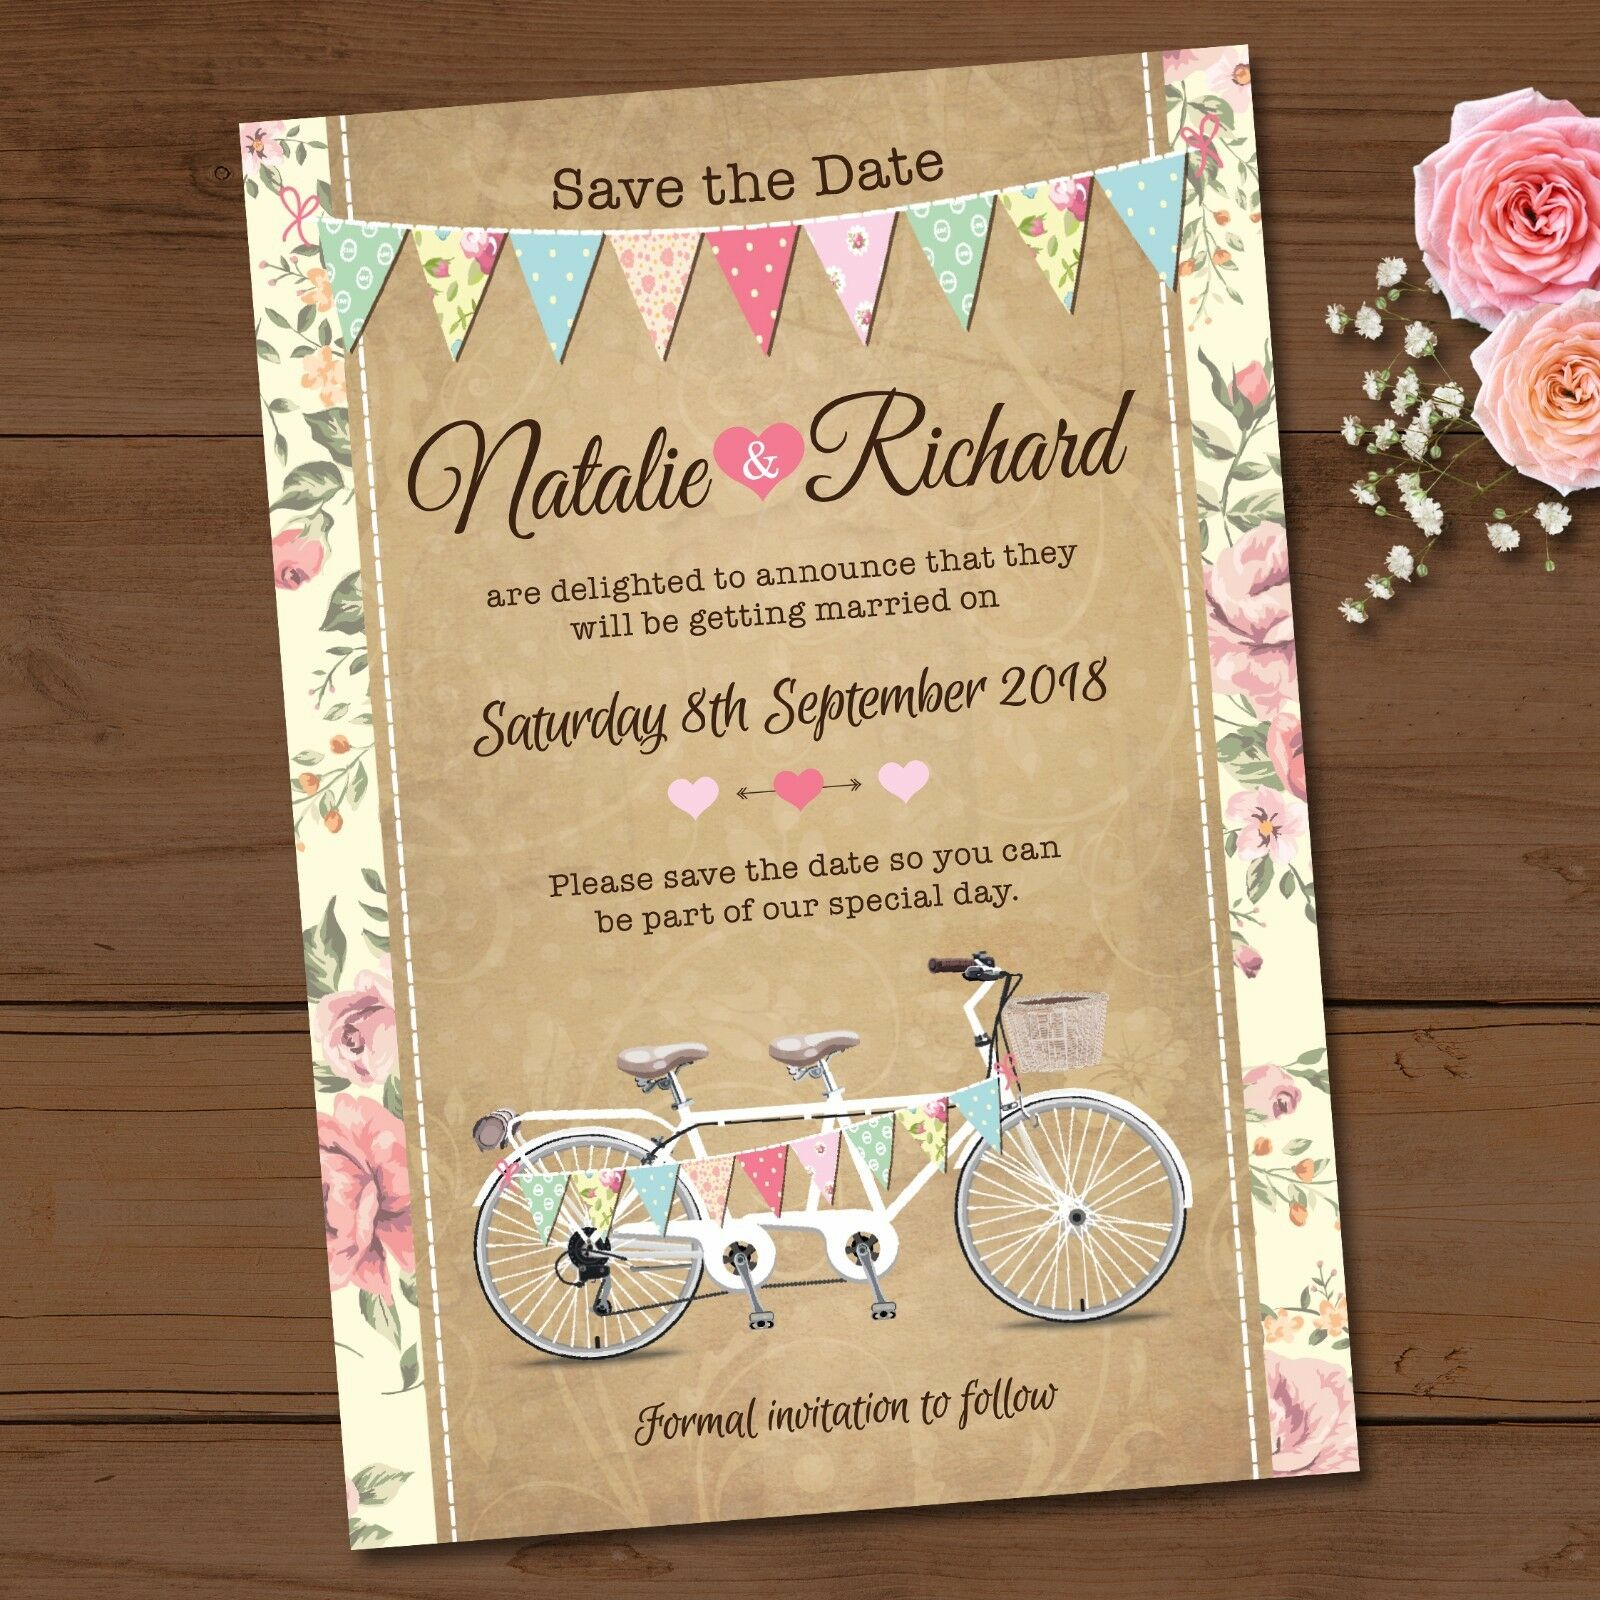 Personalised Wedding Day Save the Date Cards & Envelopes - Tandem ...